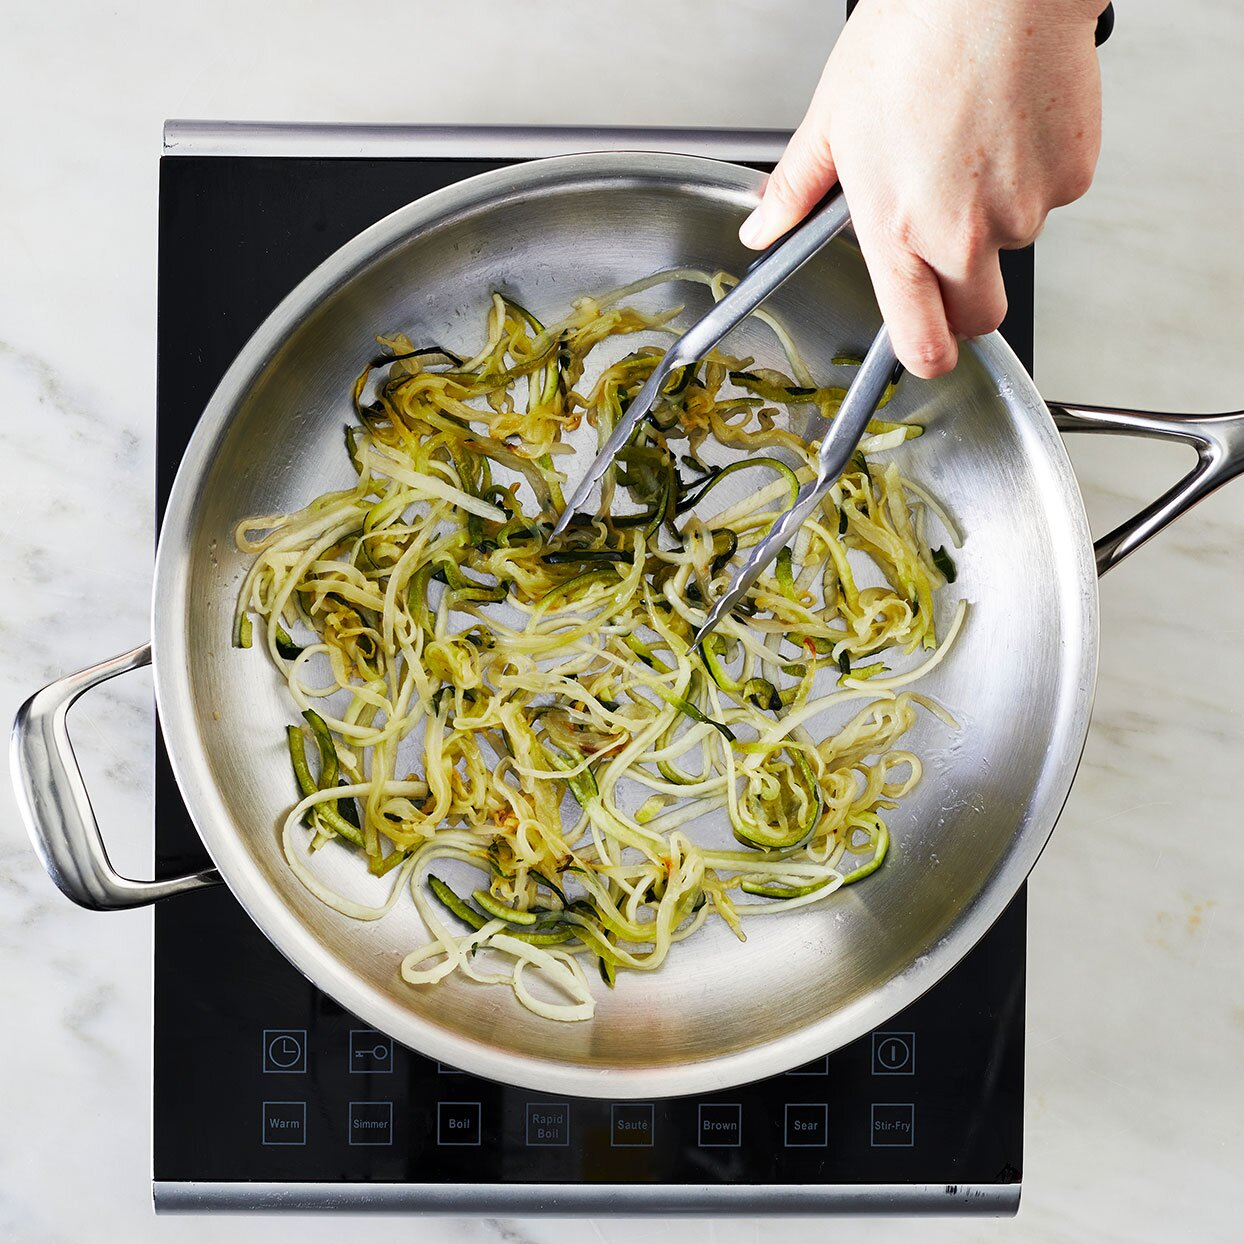 Zucchini-Noodles-in-a-saute-pan